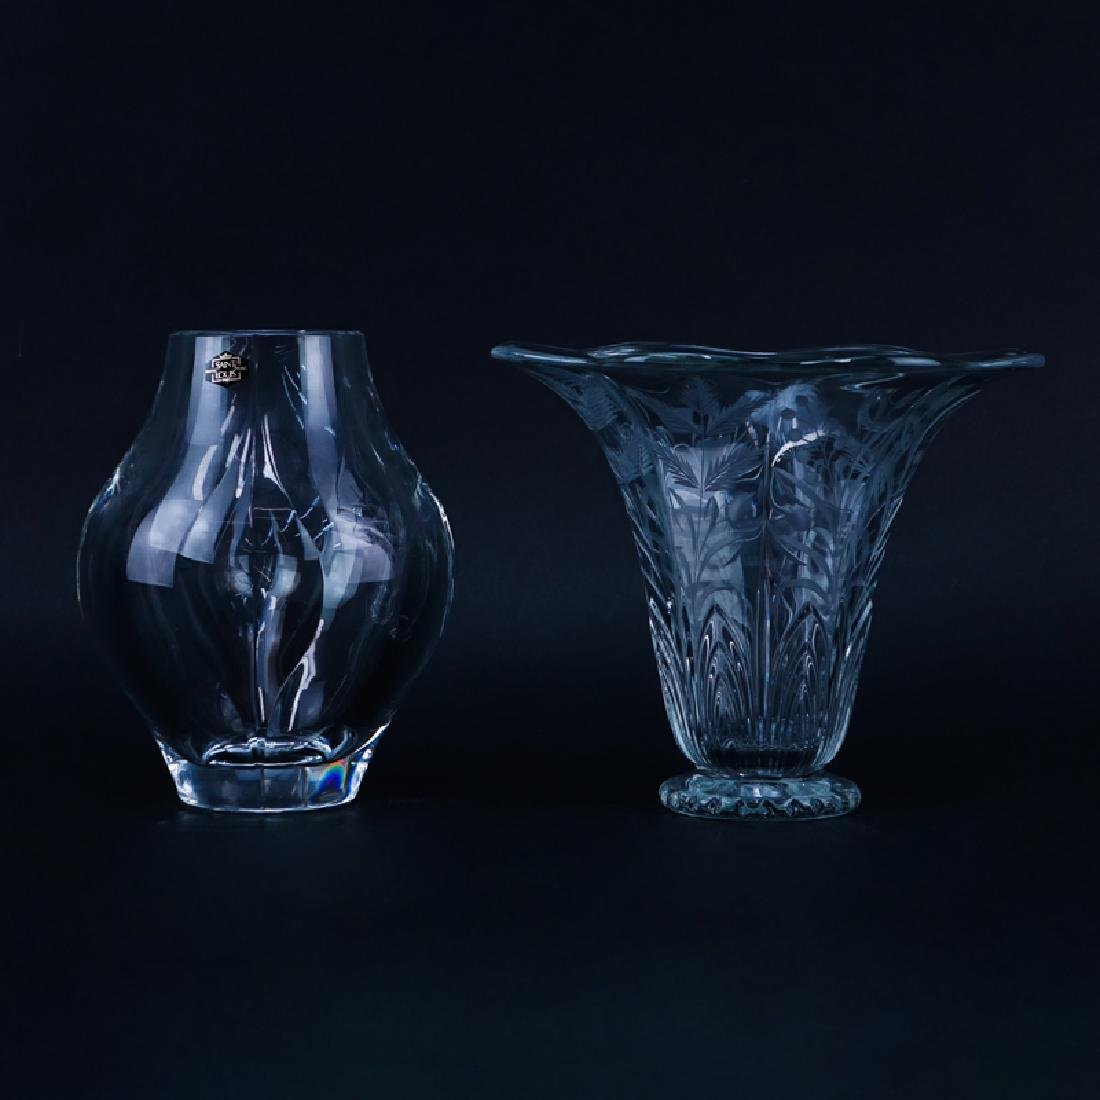 Lot of Two (2) Tableware, St. Louis Crystal Vase along